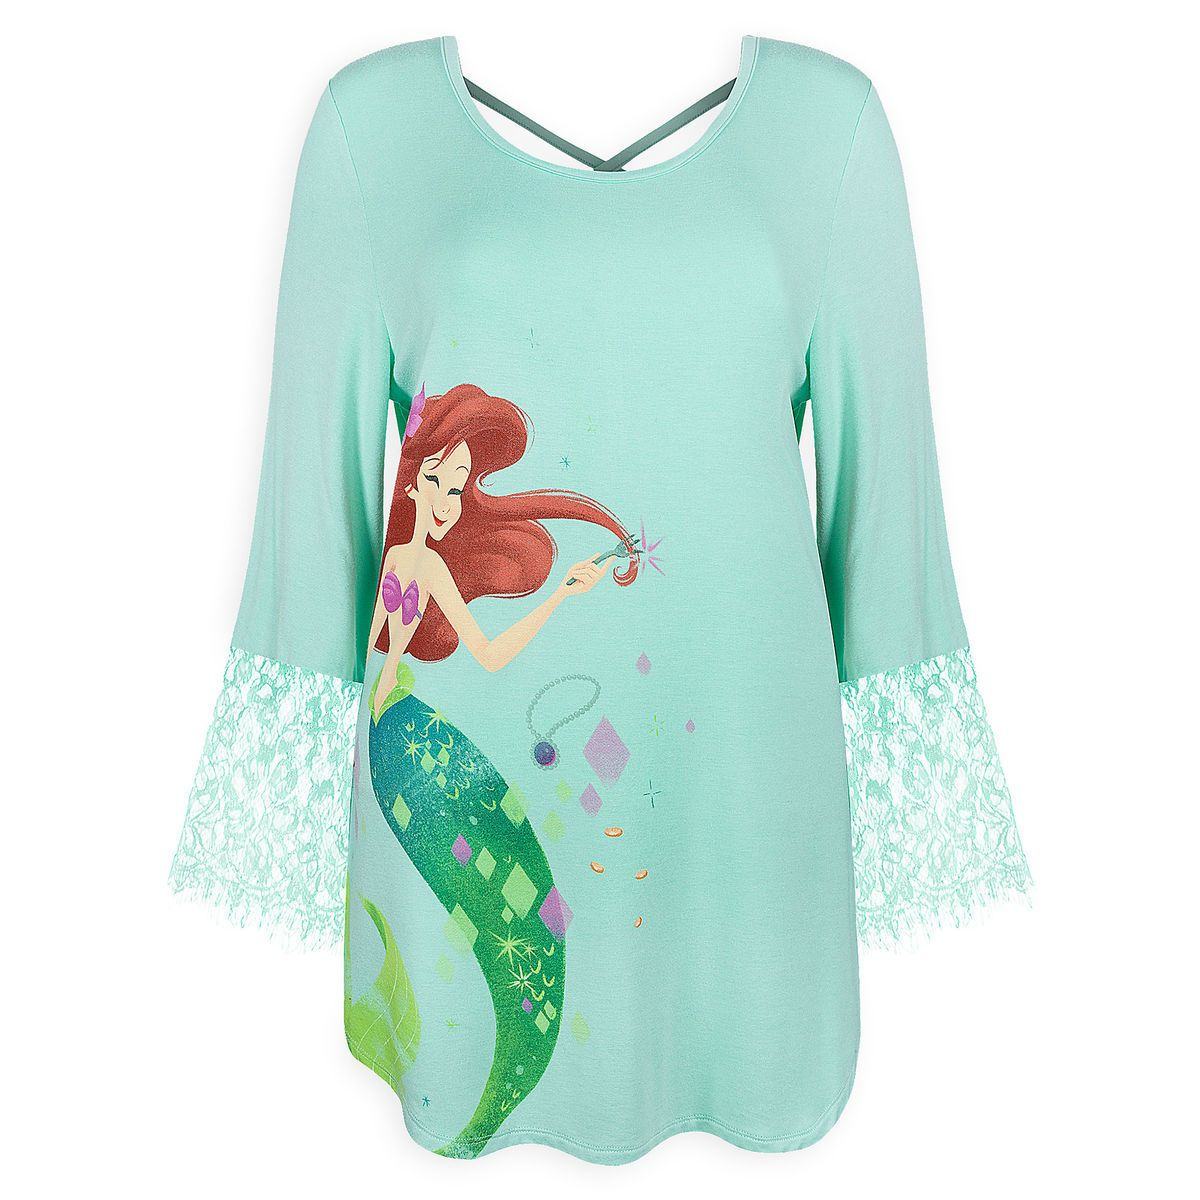 d4183d1b Product Image of Ariel Long Sleeve Fashion Top for Women - Disney Princess  Mystique # 1